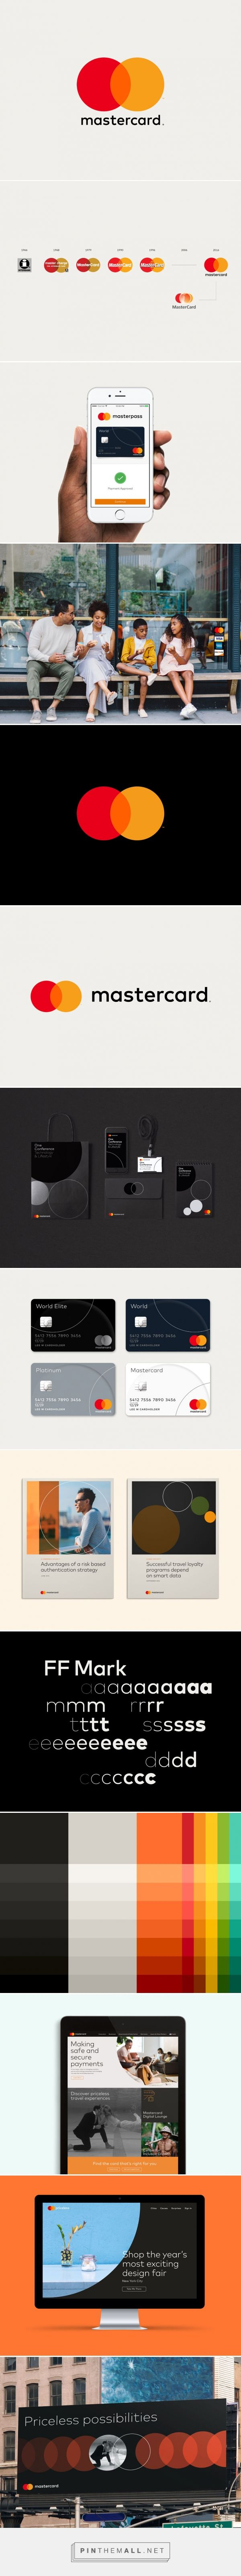 Pentagram designs new logo and identity system for Mastercard – Creative Review - created via https://pinthemall.net